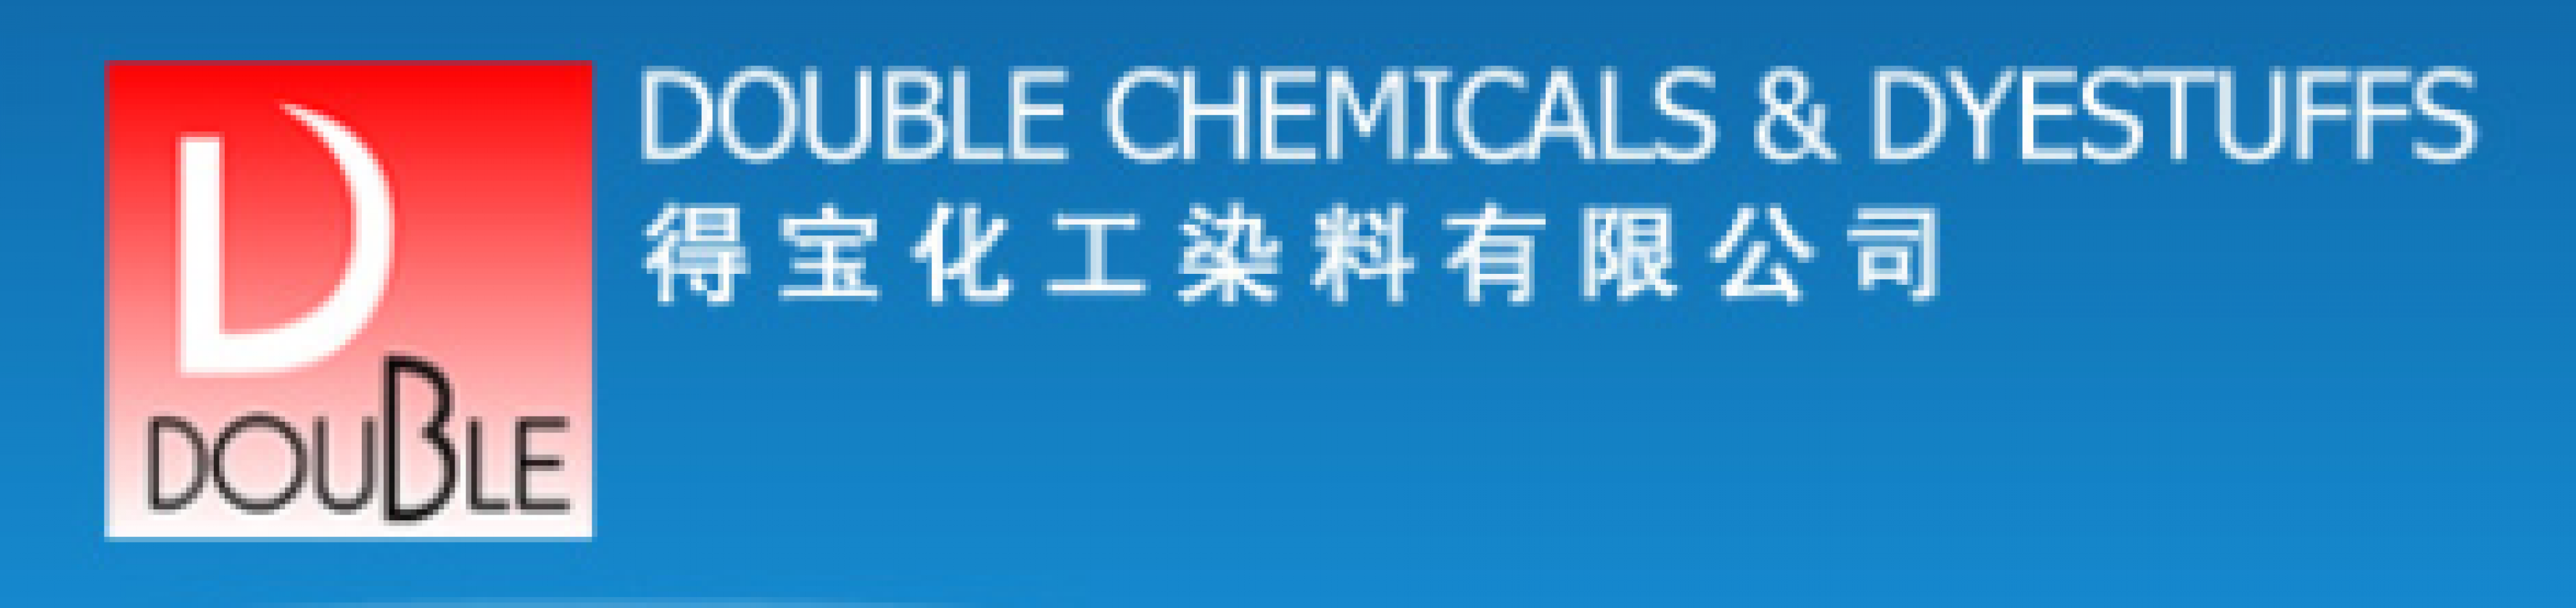 FOSHAN DOUBLE CHEMICALS & DYESTUFFS CO., LTD